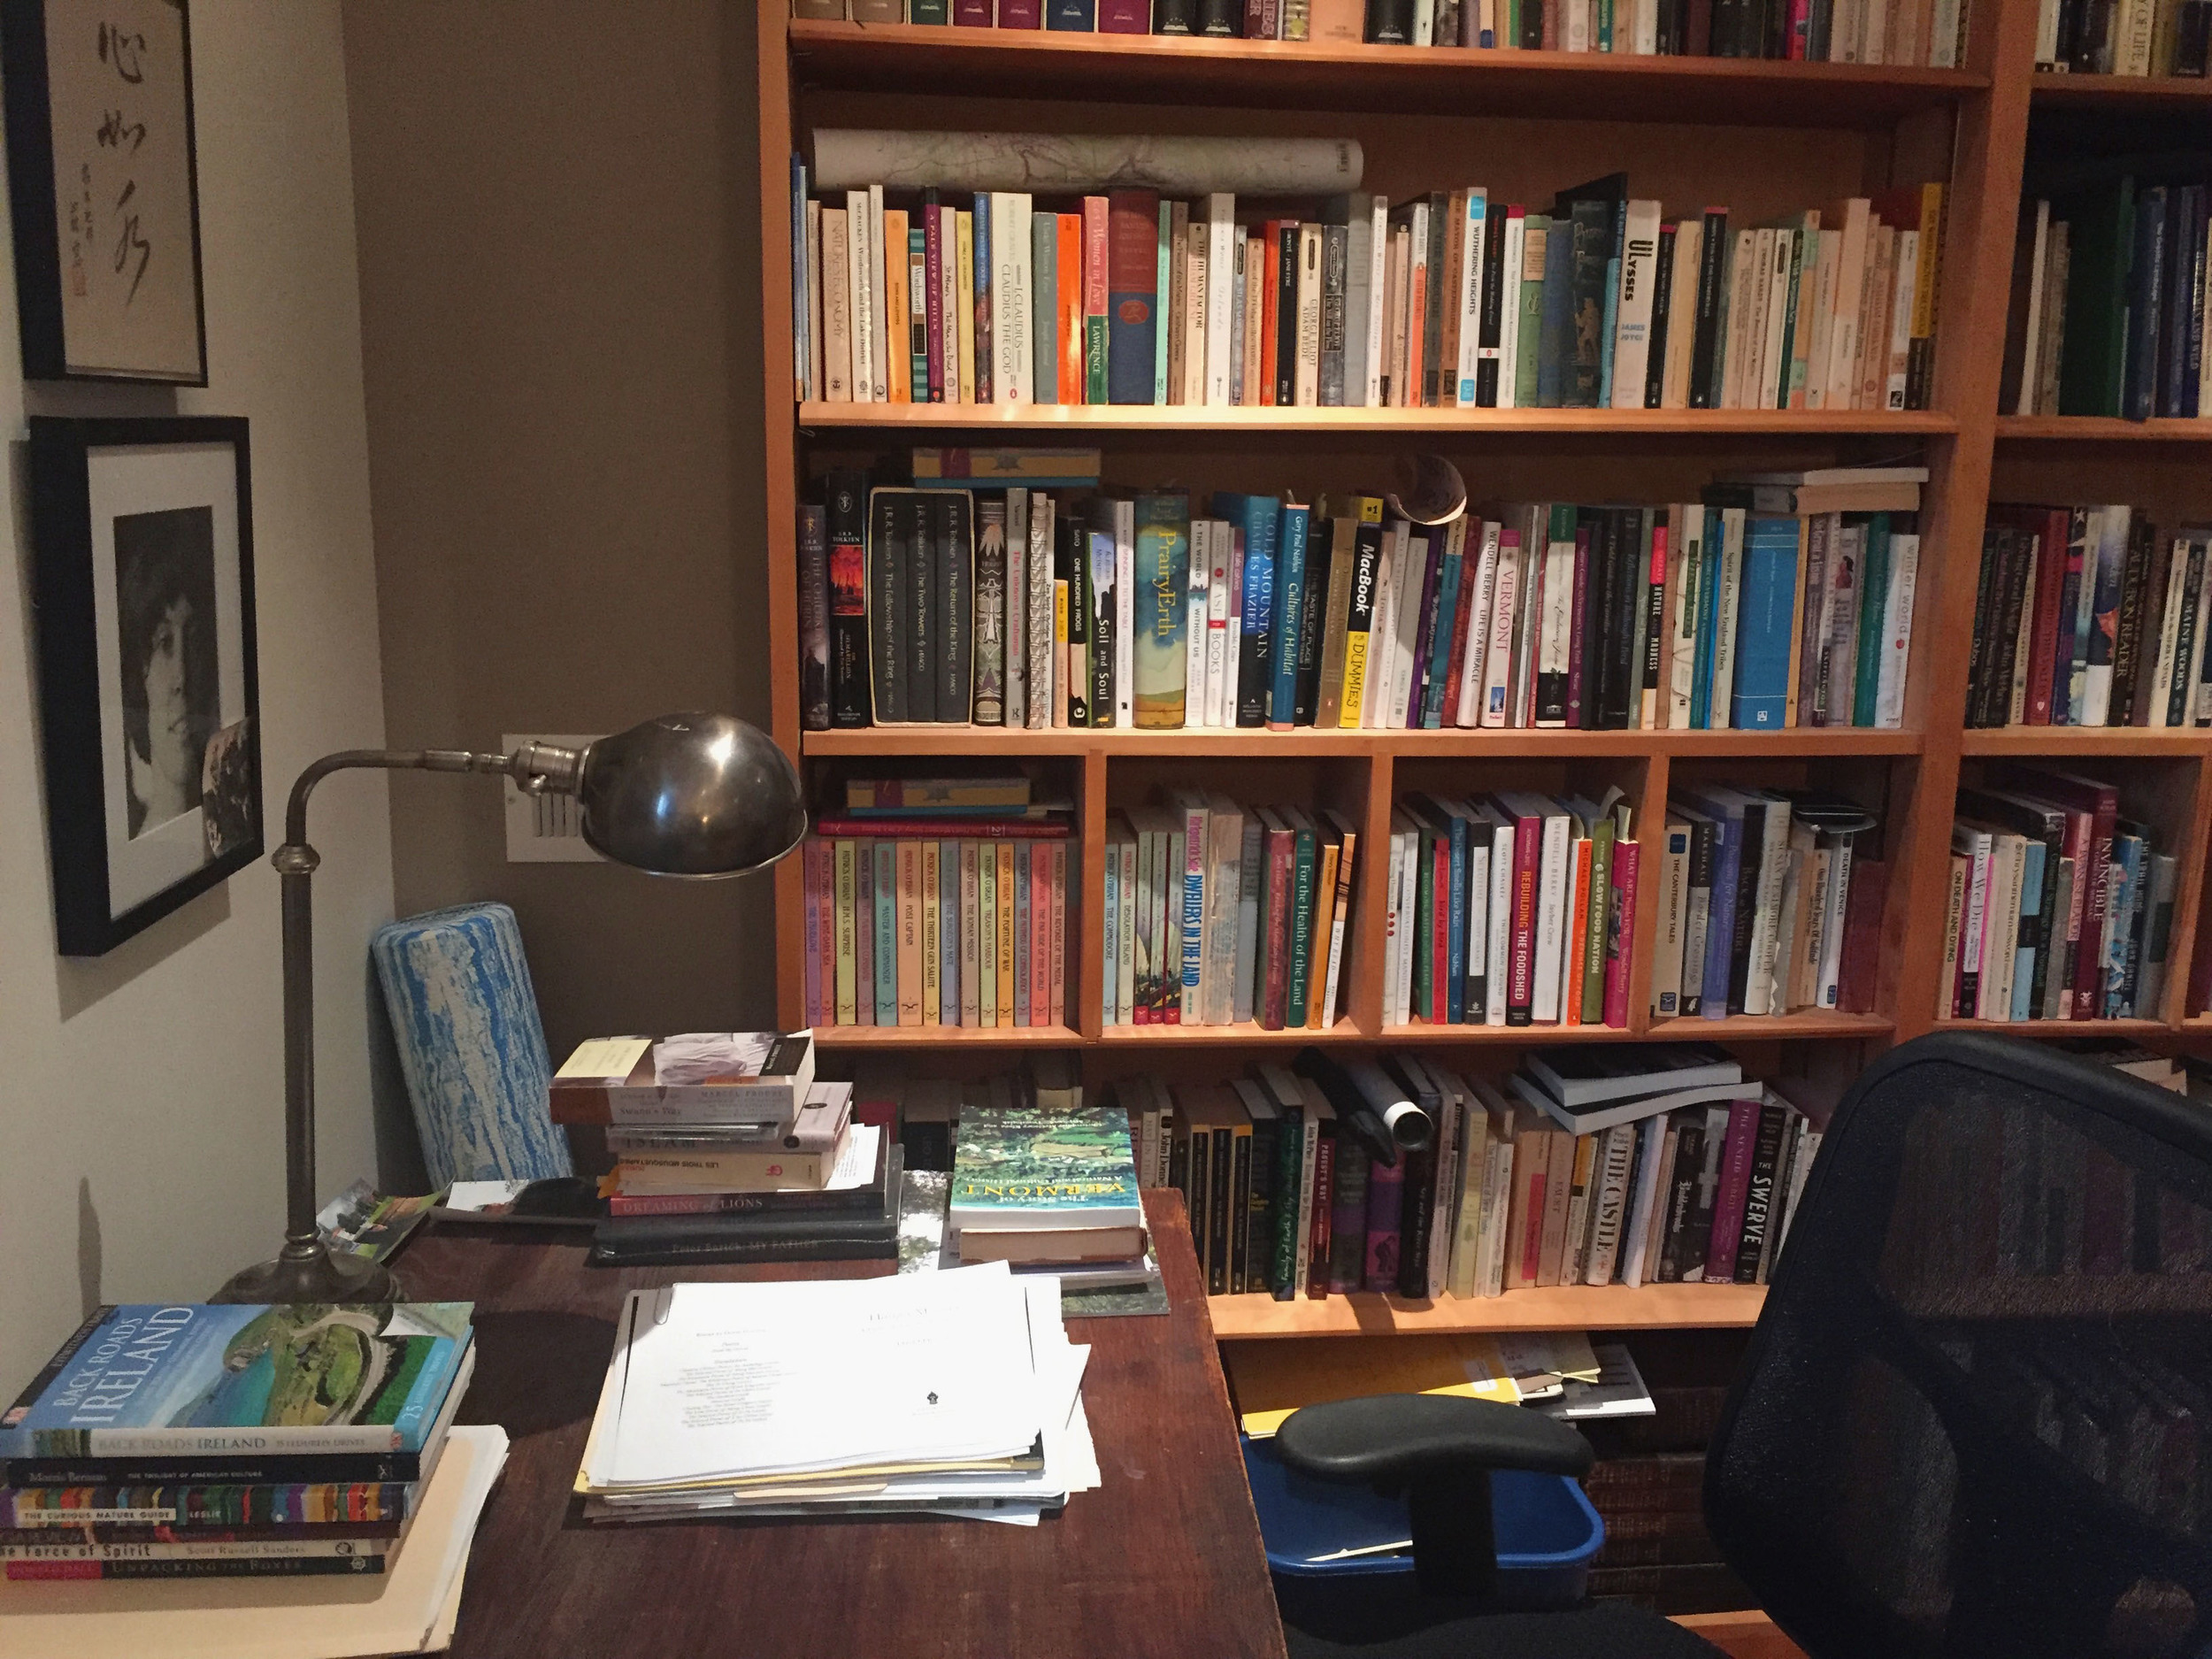 A book of Ireland, the desk, and a colorful wall of nonfiction.